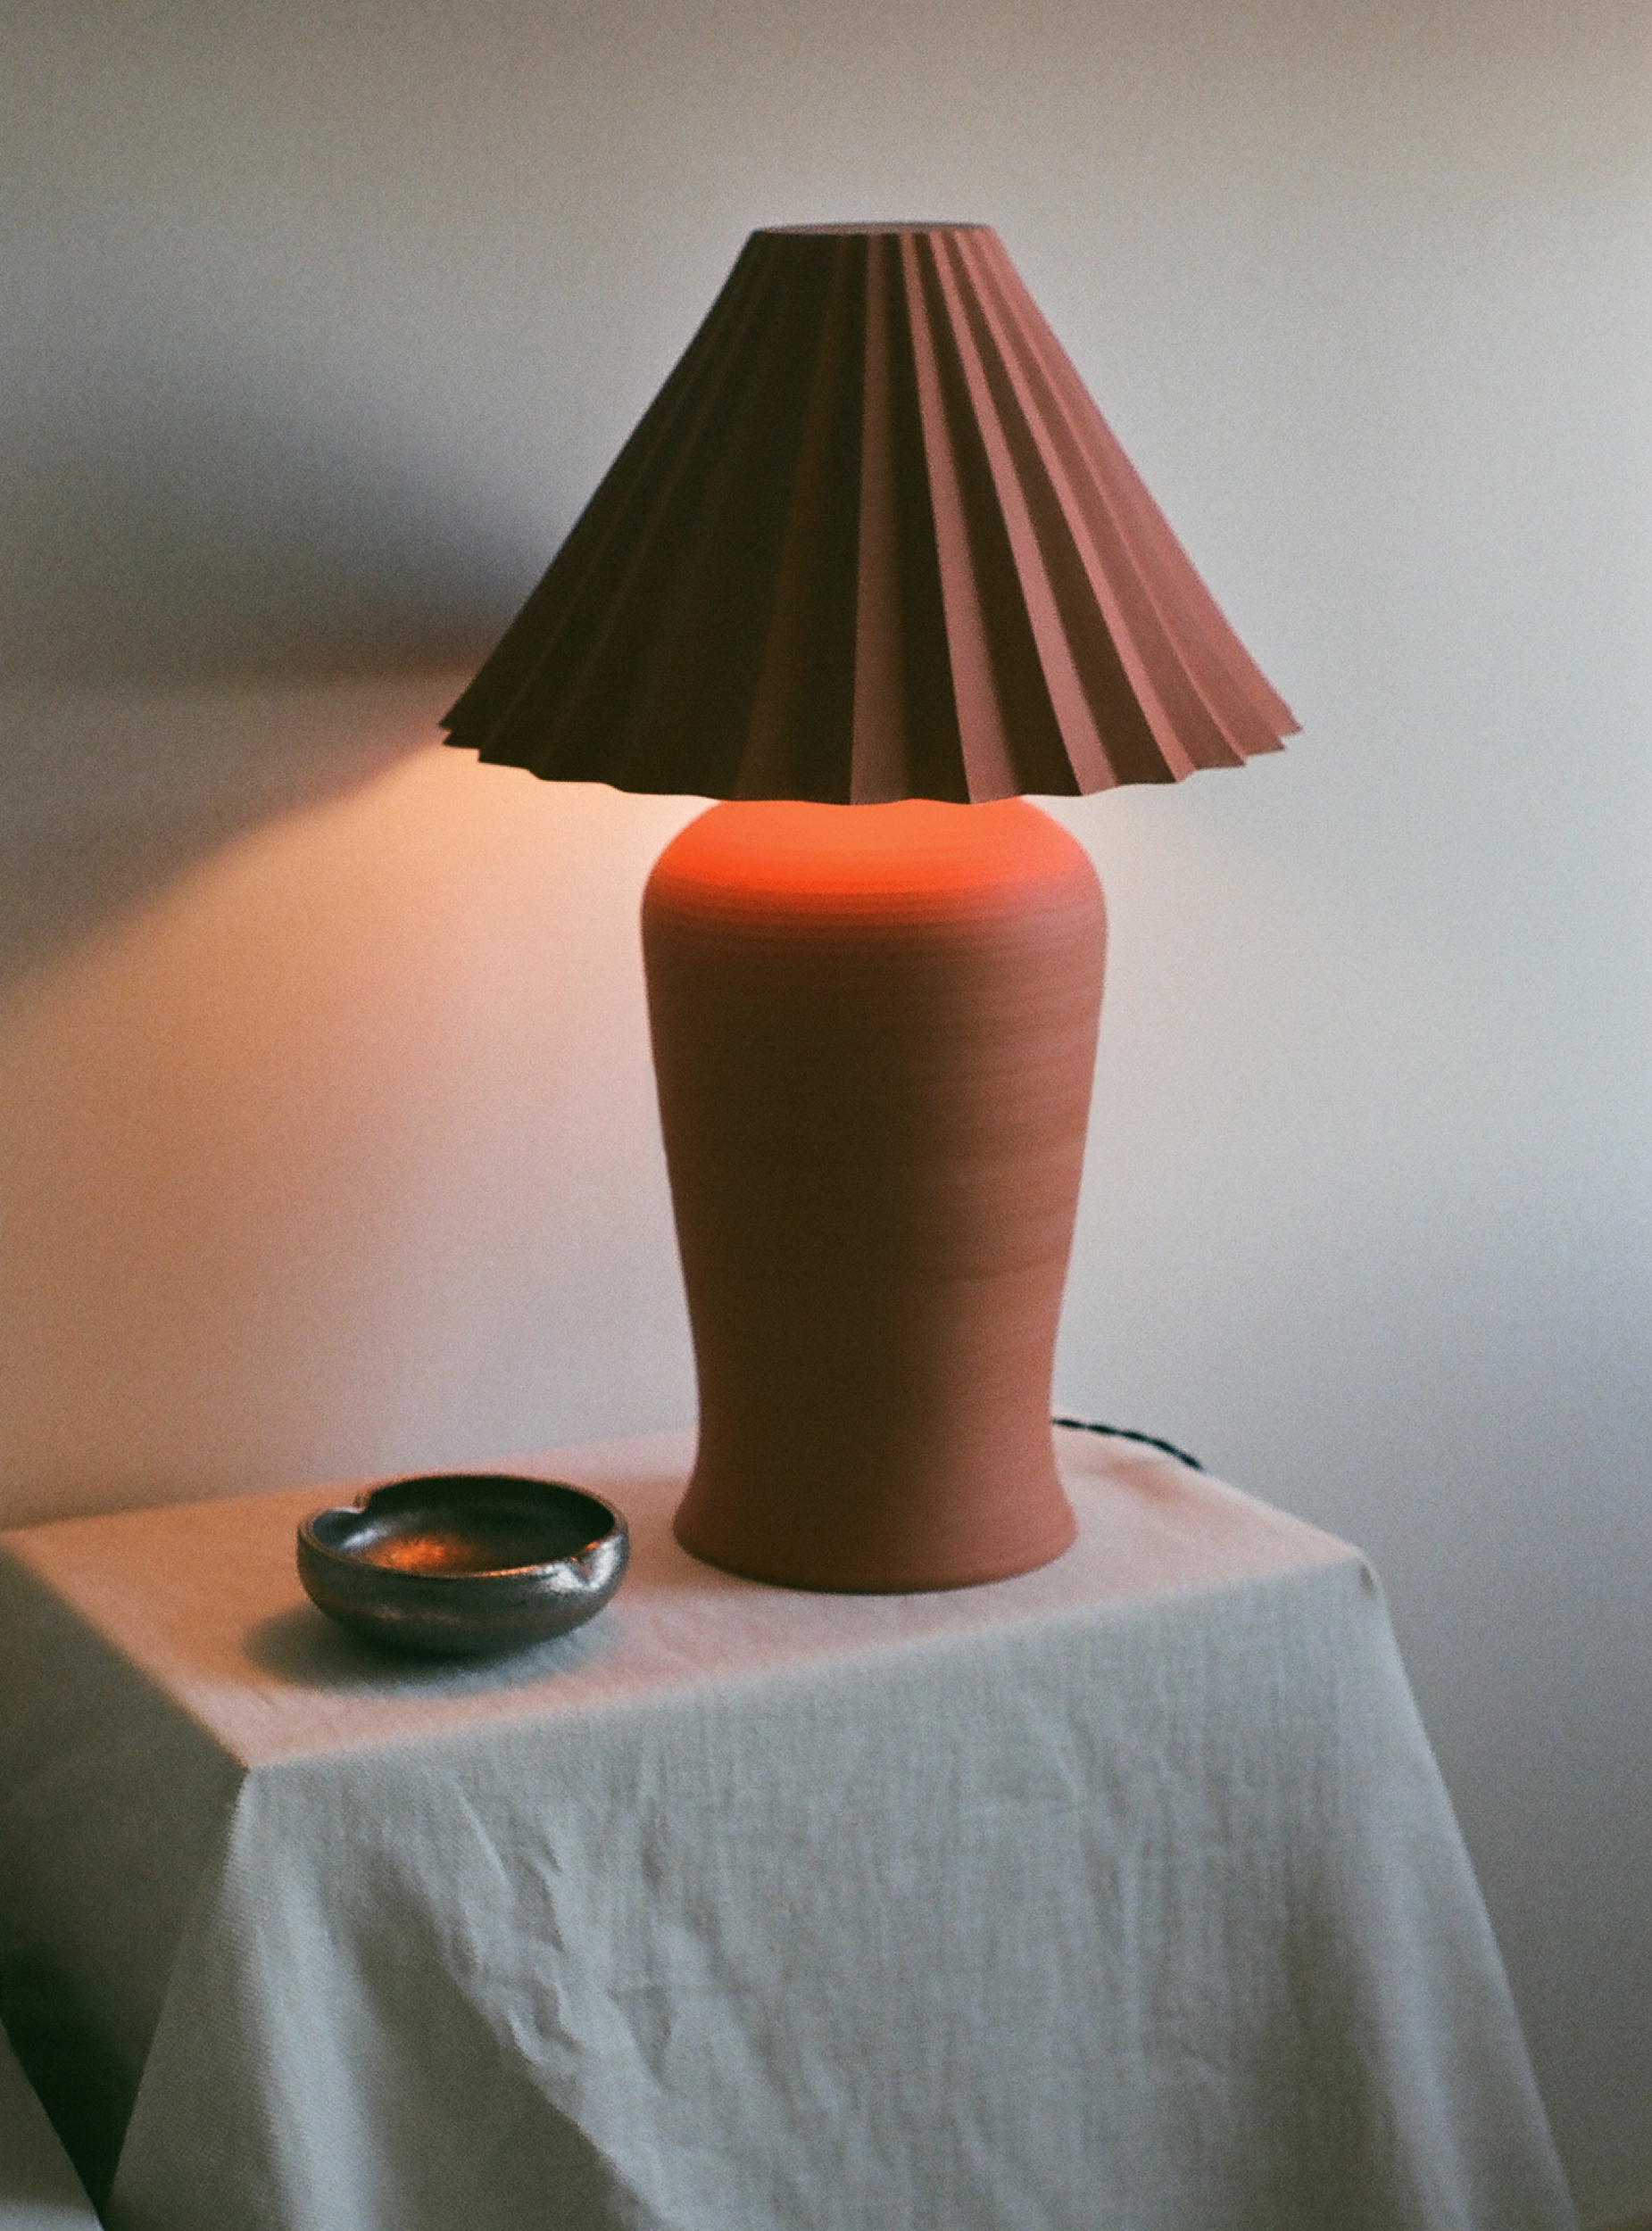 natalie weinberger ceramic lamp